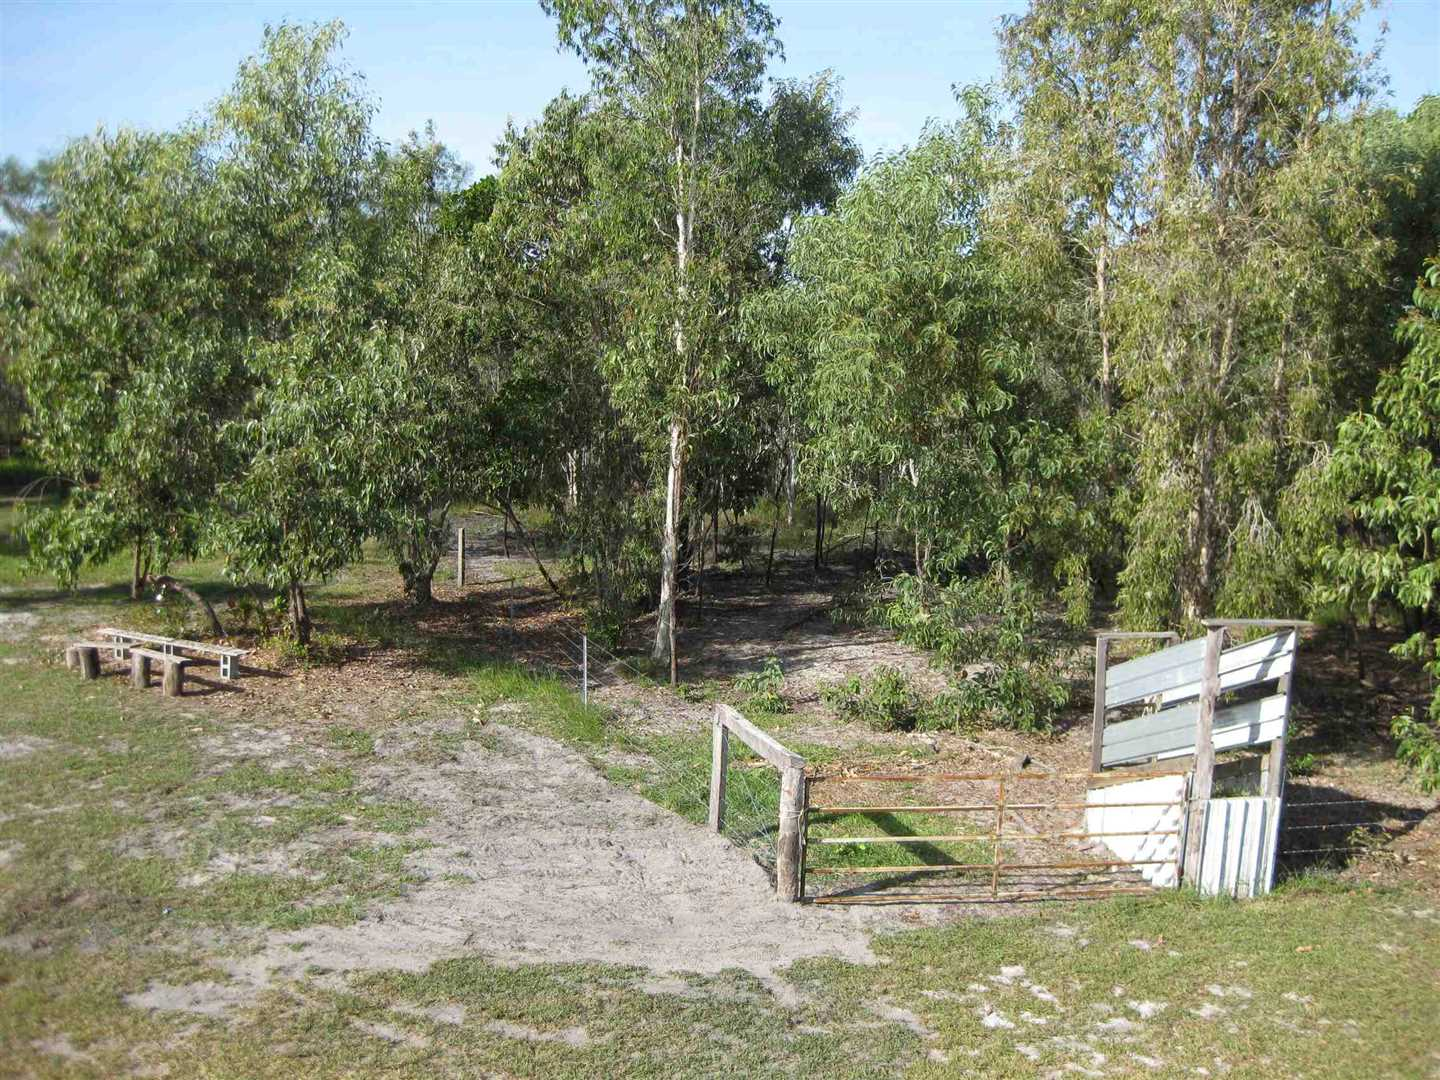 View of part of property showing part of loading ramp for livestock